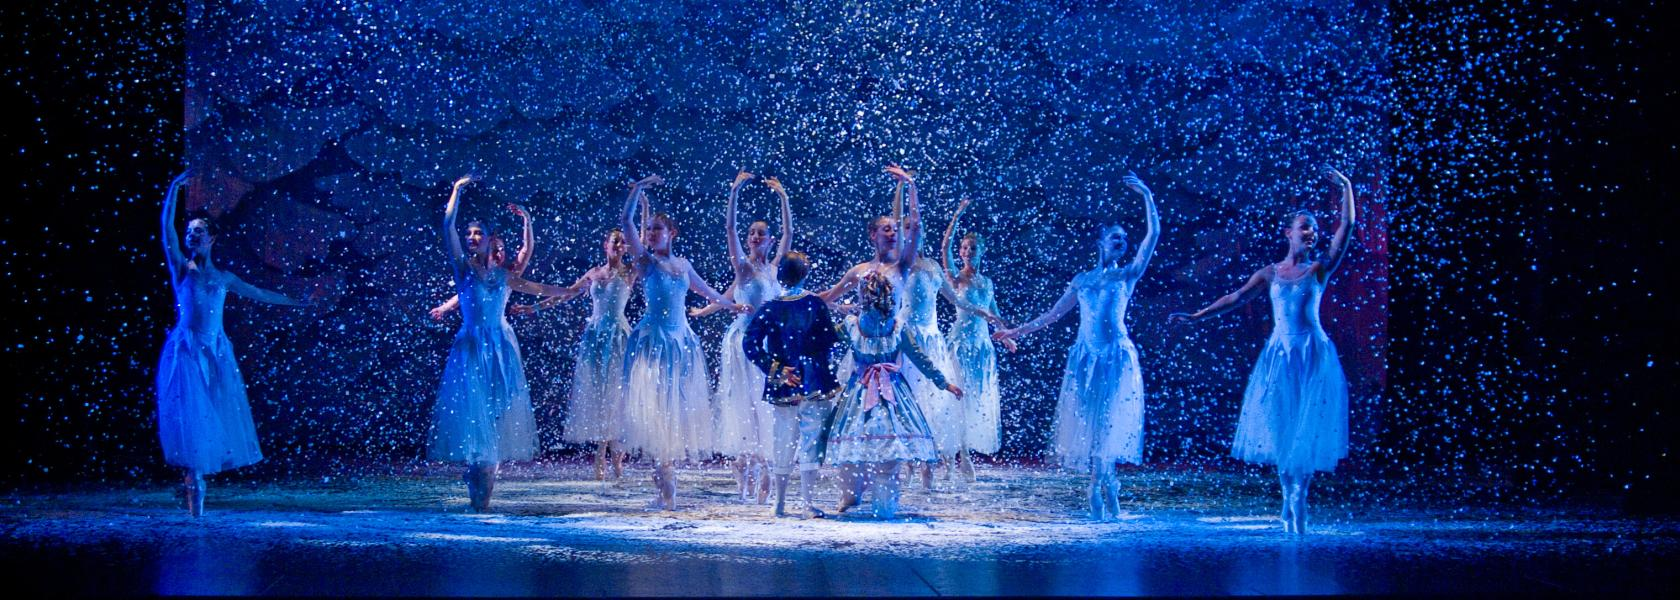 Nutcracker Suite Snow